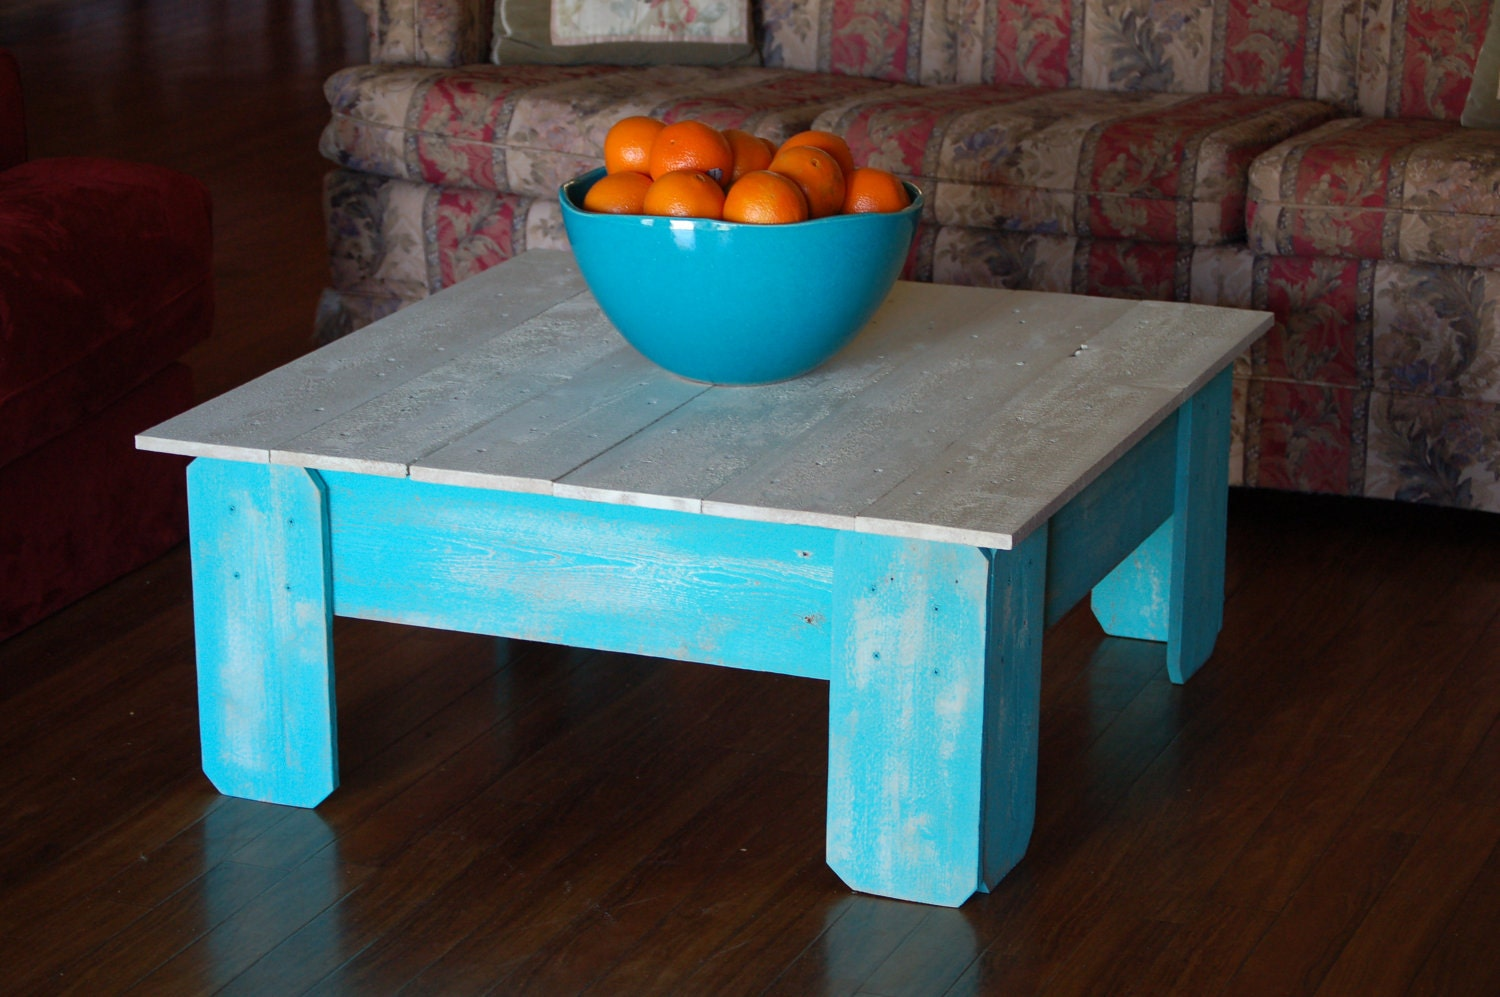 Large Coffee Table Farmhouse Table Square Table Wood Table Teal and White  Table Distressed Blue Table - Cedar Coffee Table Etsy